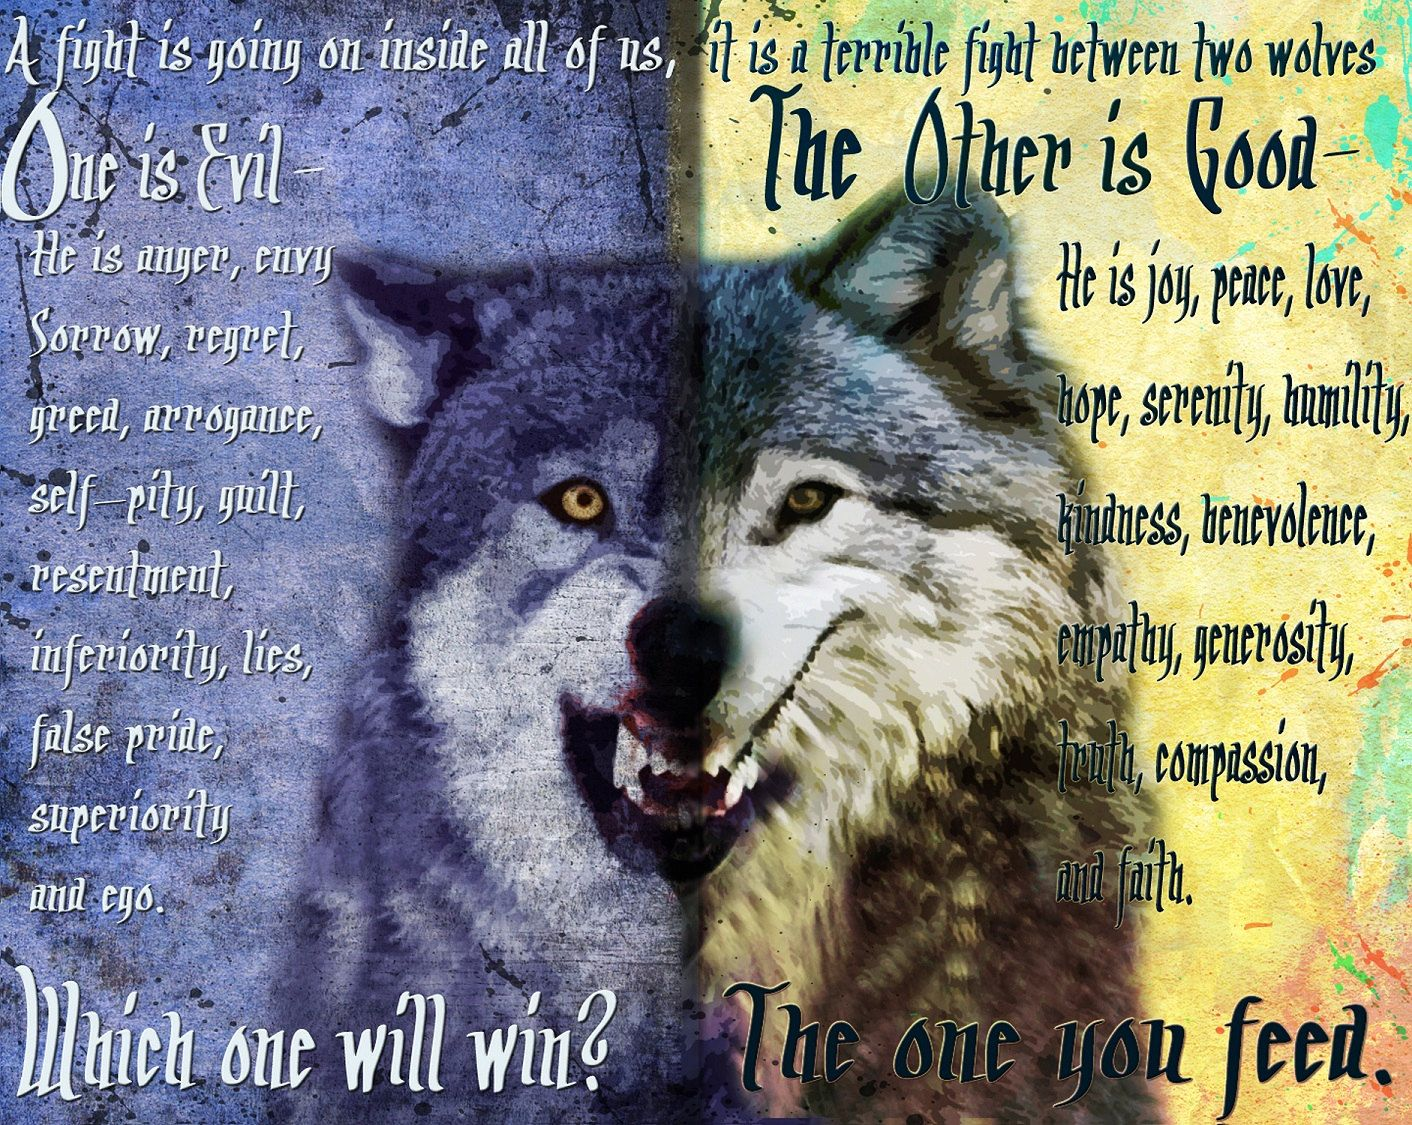 Cherokee Indian Quotes A Fight Is Going On Inside All Of Us It Is A Terrible Fight